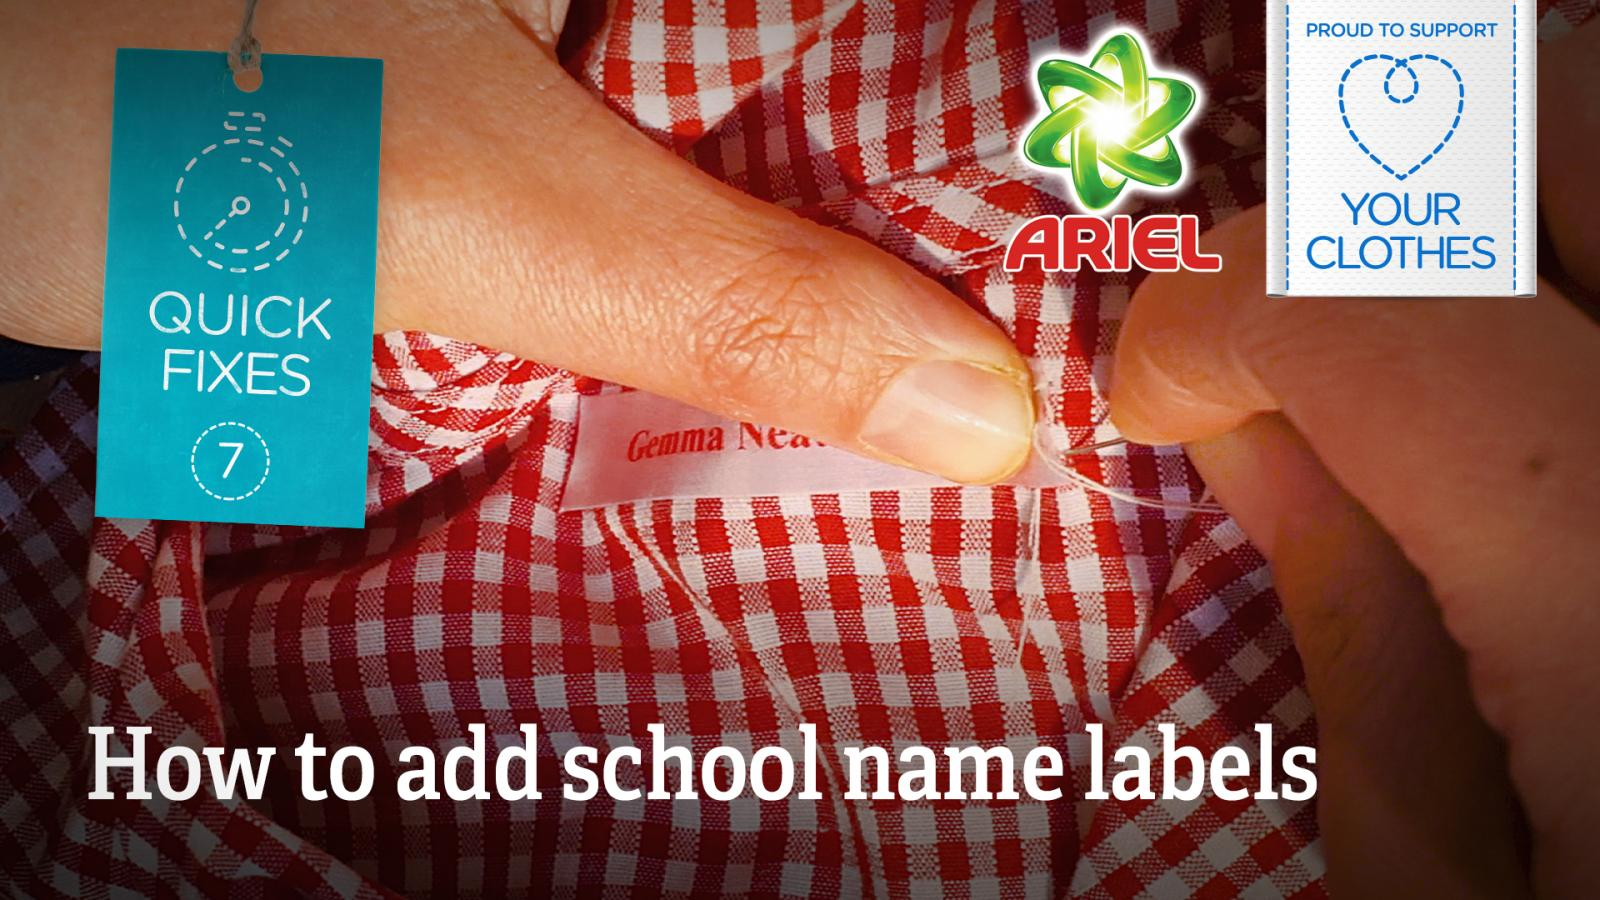 Text: how to add school name labels